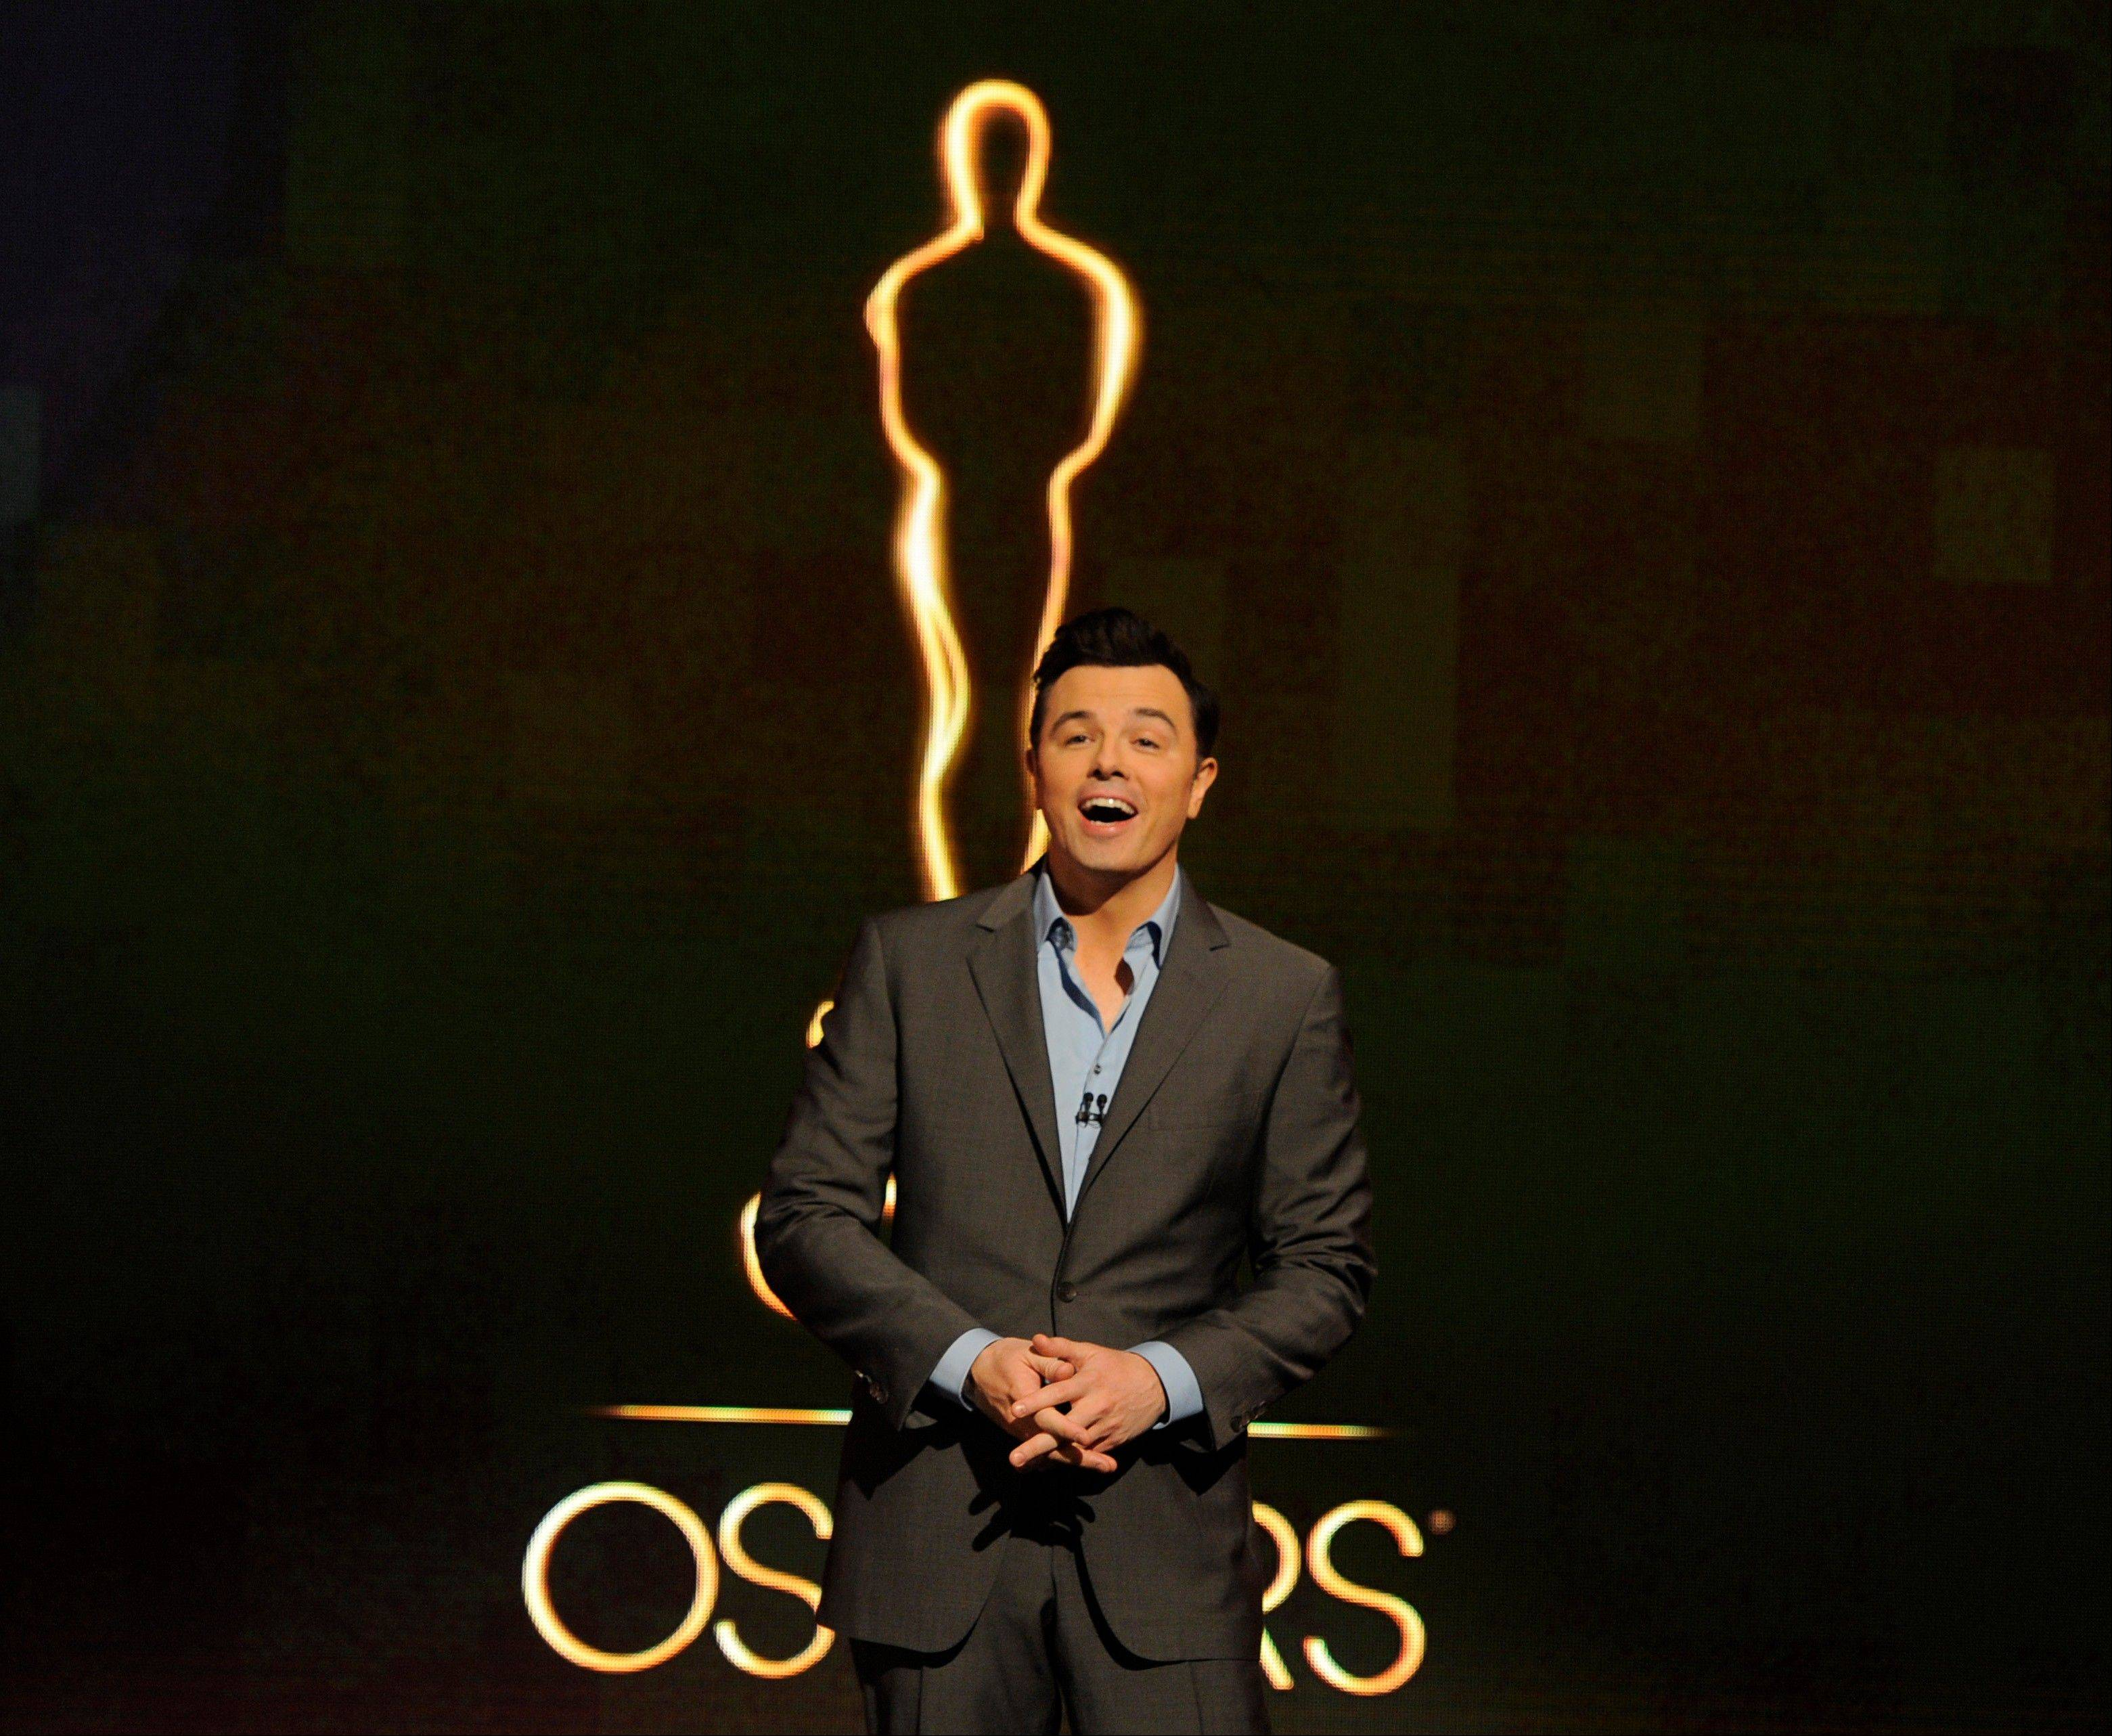 2013 Oscar host Seth MacFarlane may bring a cheekiness to Sunday's show that prods younger viewers to check out the Oscars just to see what he might pull.